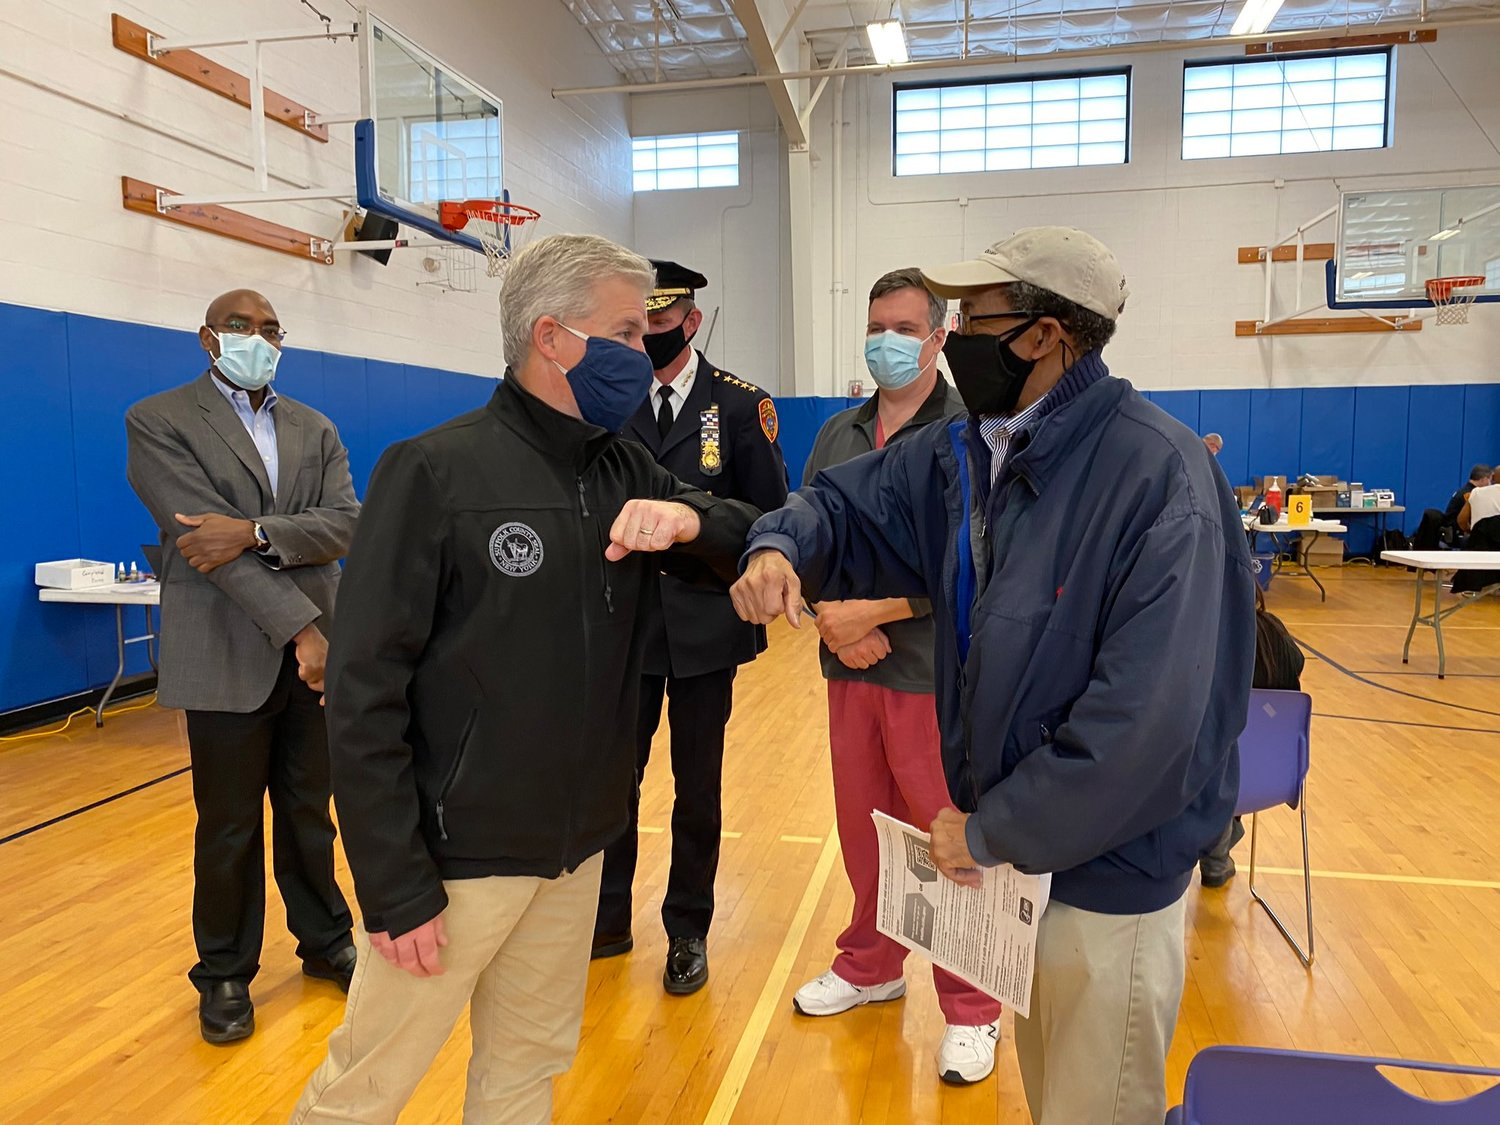 Suffolk County executive Steve Bellone greets an individual who received the first dose of the vaccine at Boys & Girls Club of Bellport for the MLK Day of Service on Jan 18.